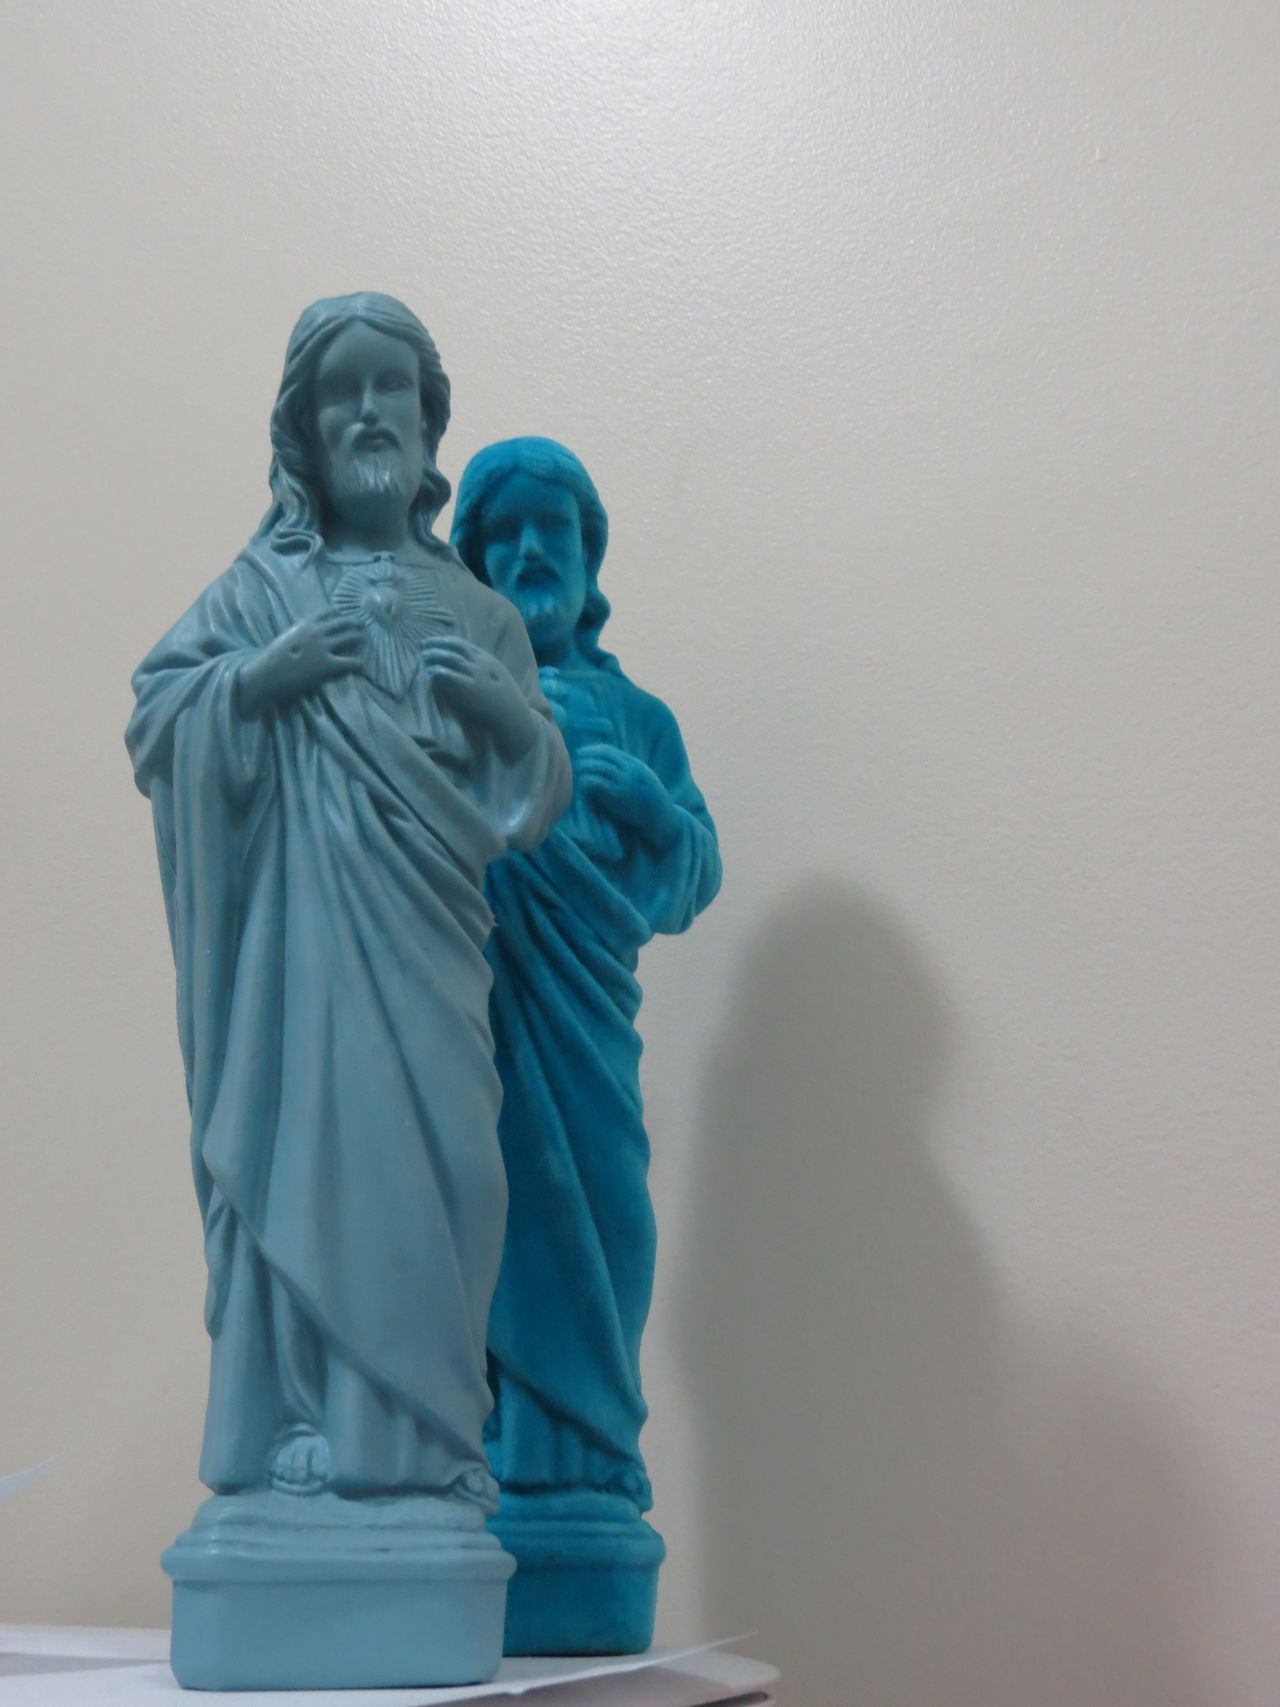 Human Representation Statue No People Indoors  Sculpture Day Shadows Christ Almighty God Legend Relic Religion Heaven Shades Of Blue Two Tones Blue Lifestyles Double Exposure Duplicate Jesus Christ Jesus Christ Close-up Statue Double Vision